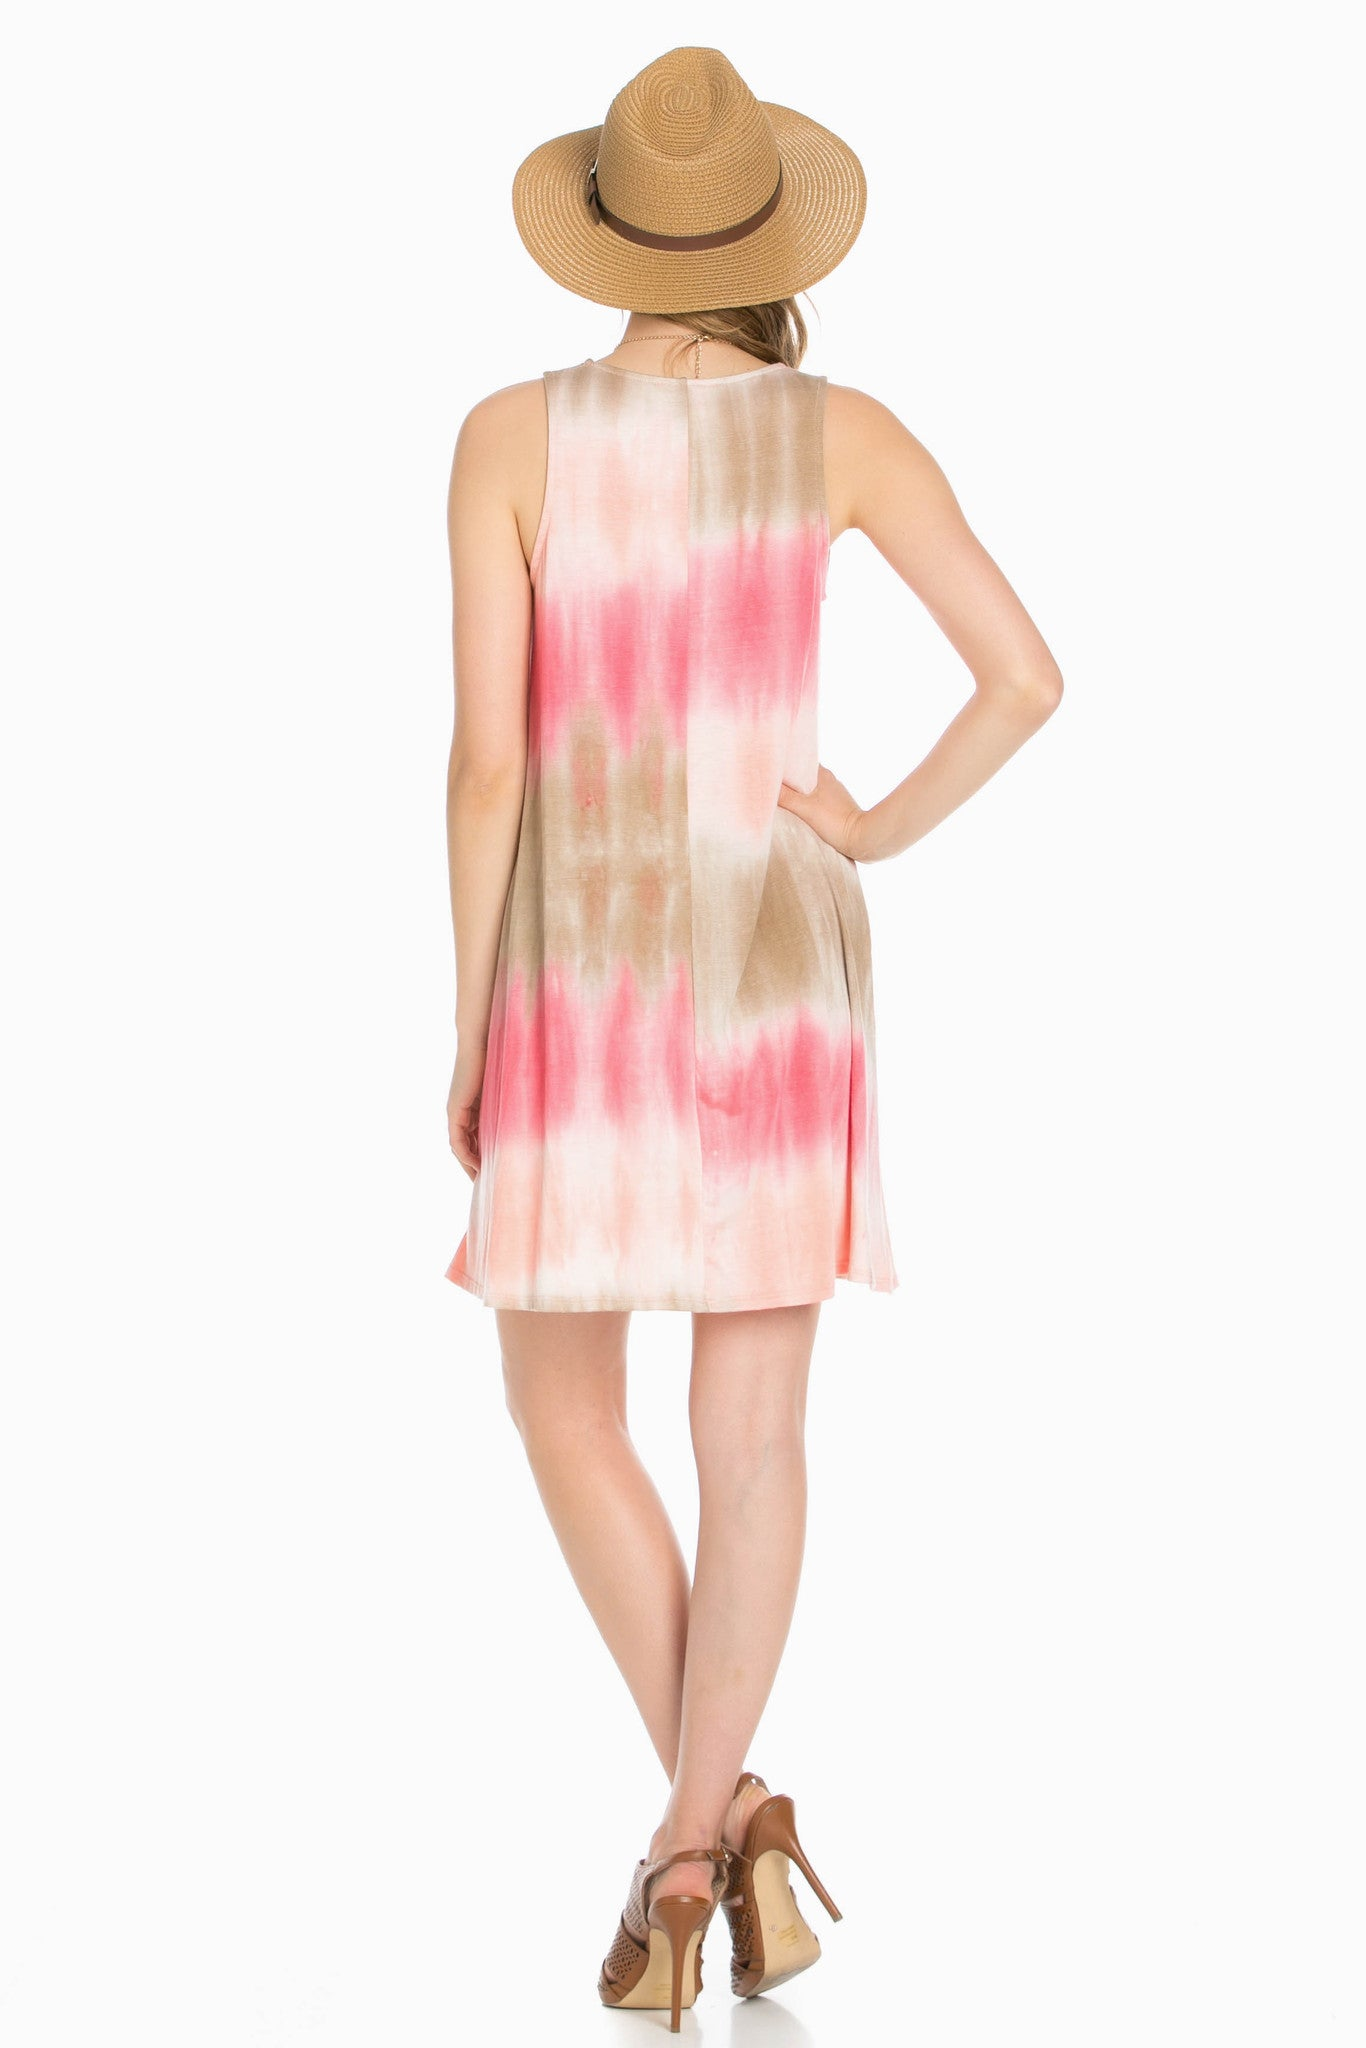 Striped Coral Tie Dye A-Line Dress - Dresses - My Yuccie - 4